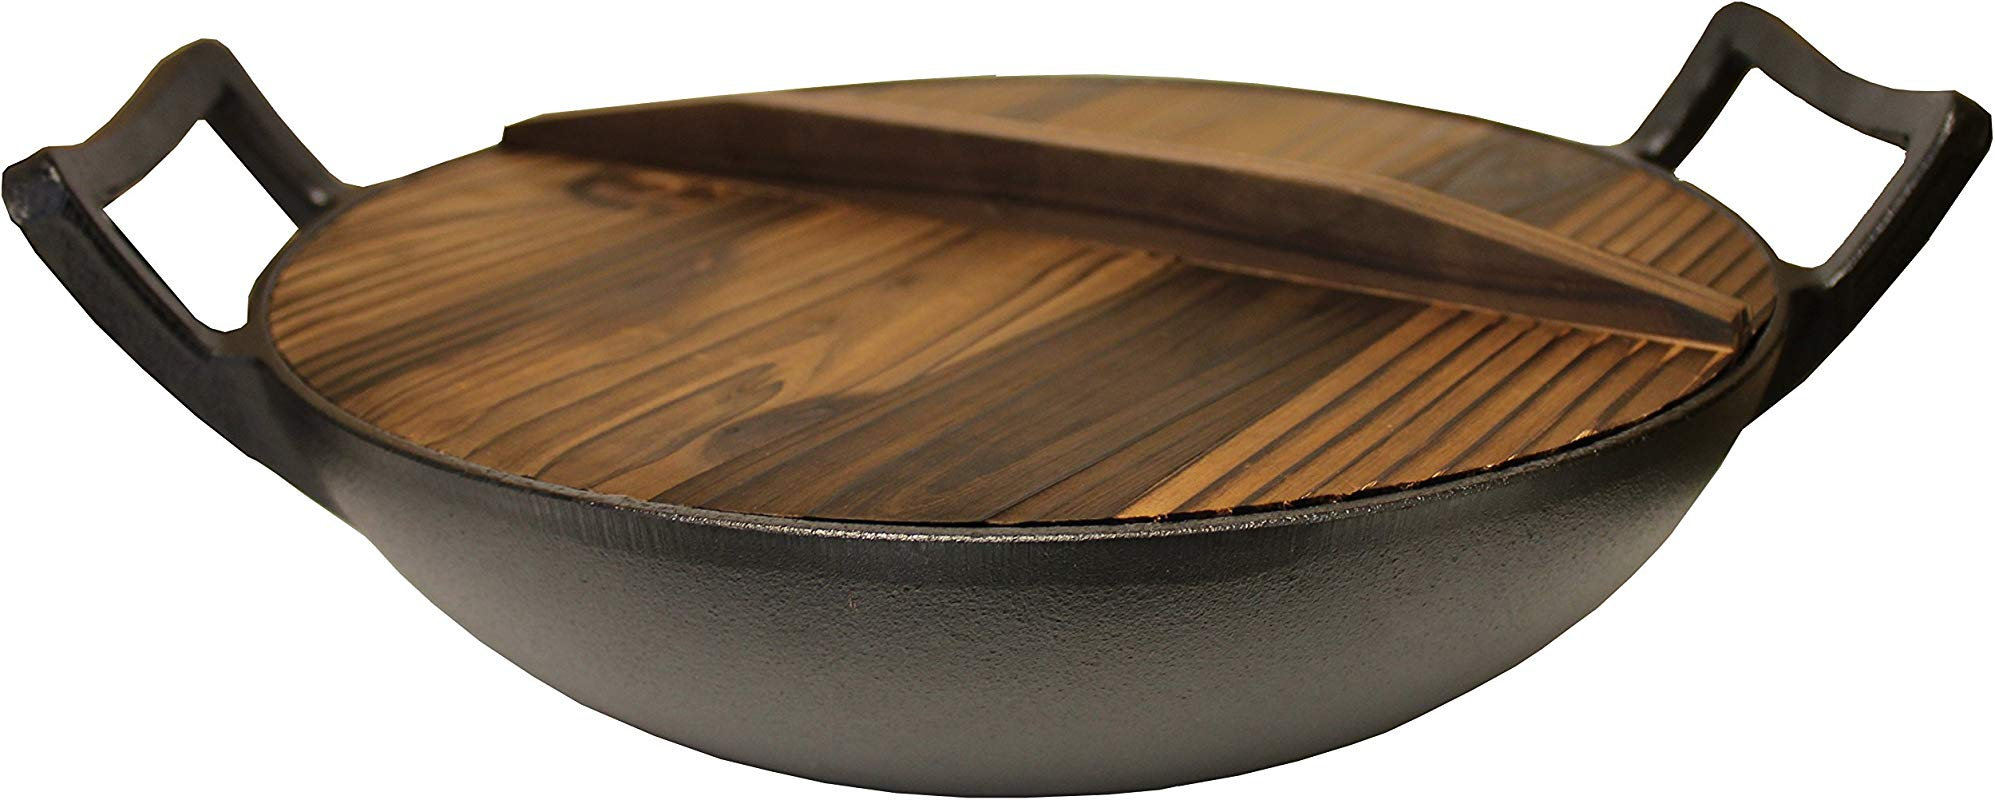 Kasian House Cast Iron Wok Pre Seasoned With Wooden Lid 12 Diameter And Large Handles Stir Fry Pan